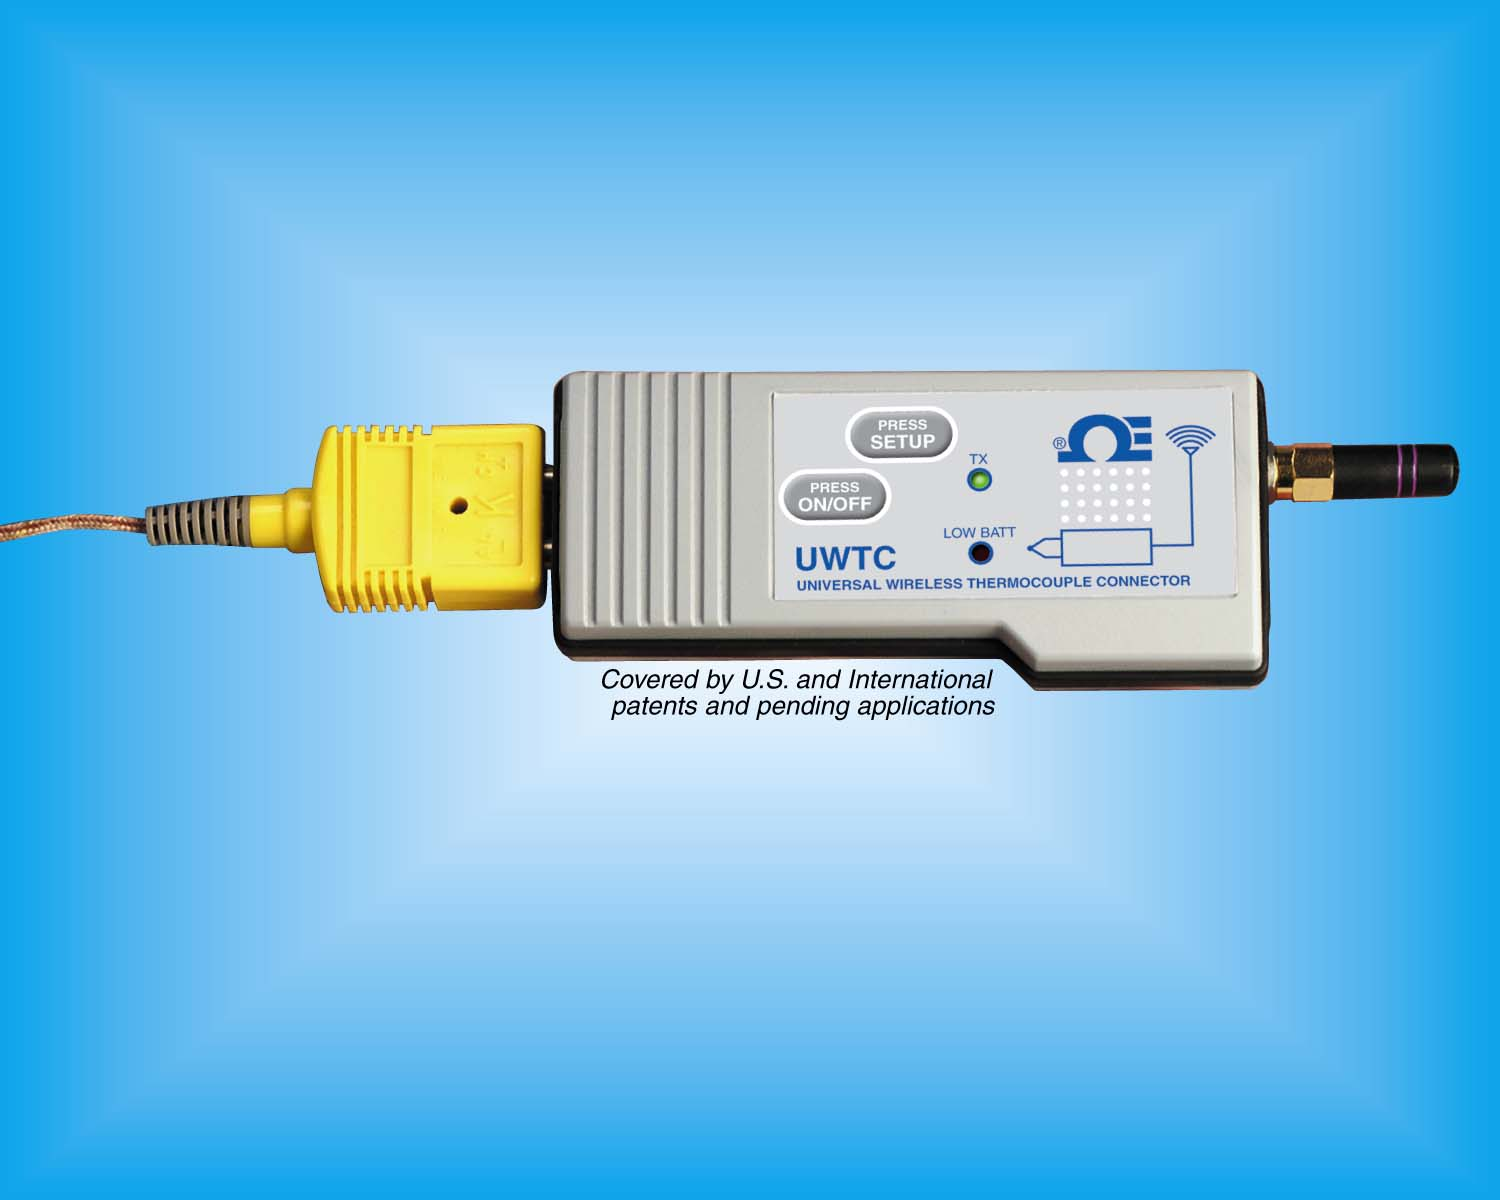 Thermocouple-to-Wireless Connector/Converter - Digital Engineering